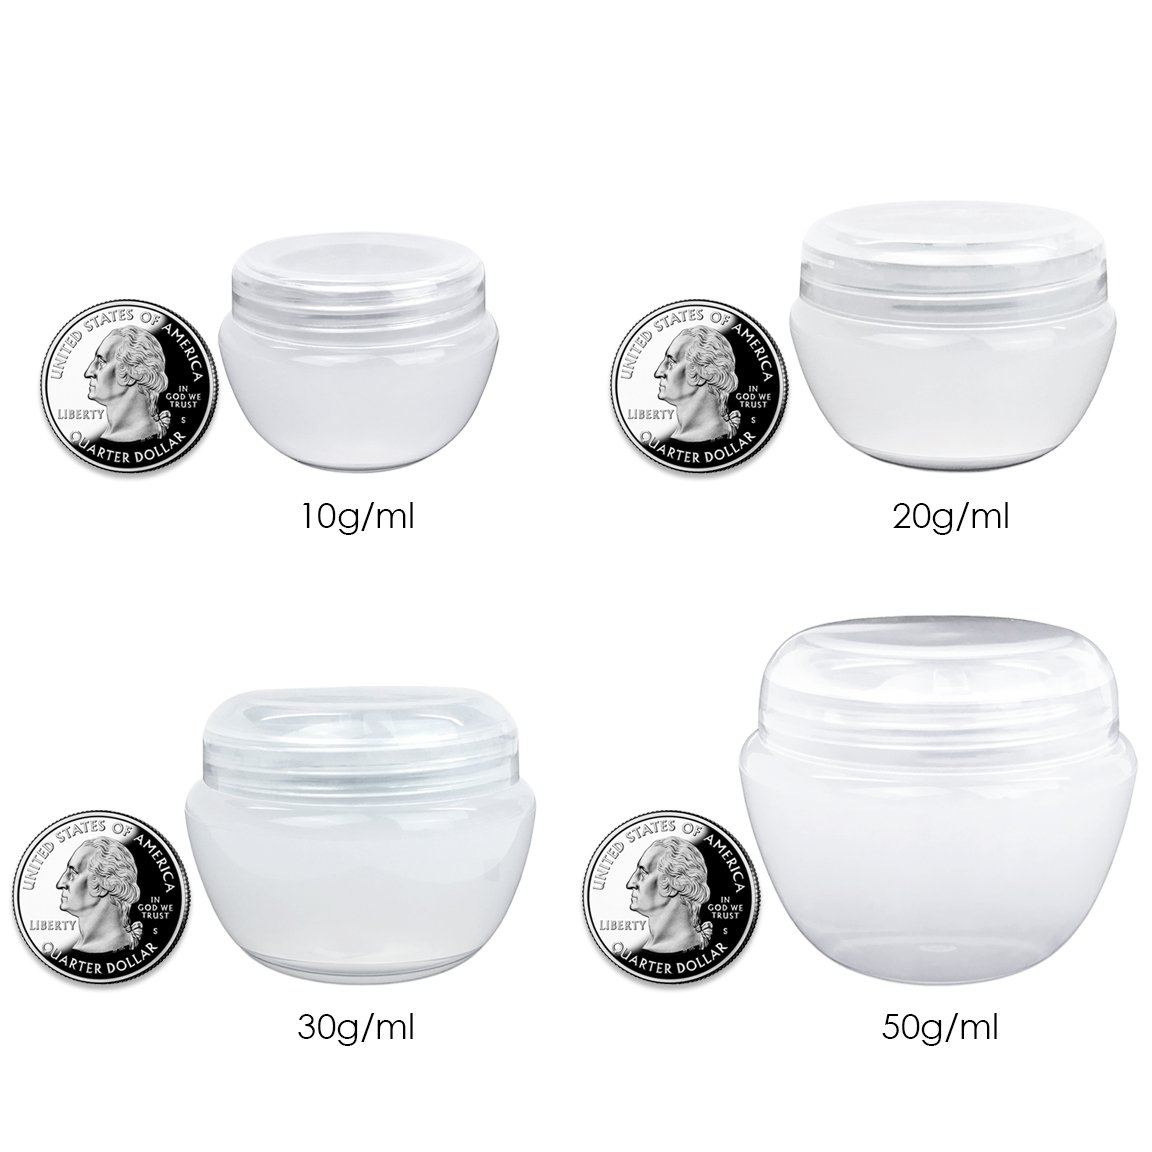 Beauticom 10G/10ML Frosted Container Jars with Inner Liner for Scrubs, Oils, Salves, Creams, Lotions, Makeup Cosmetics, Nail Accessories, Beauty Aids - BPA Free (72 Pieces, Pink) by Beauticom